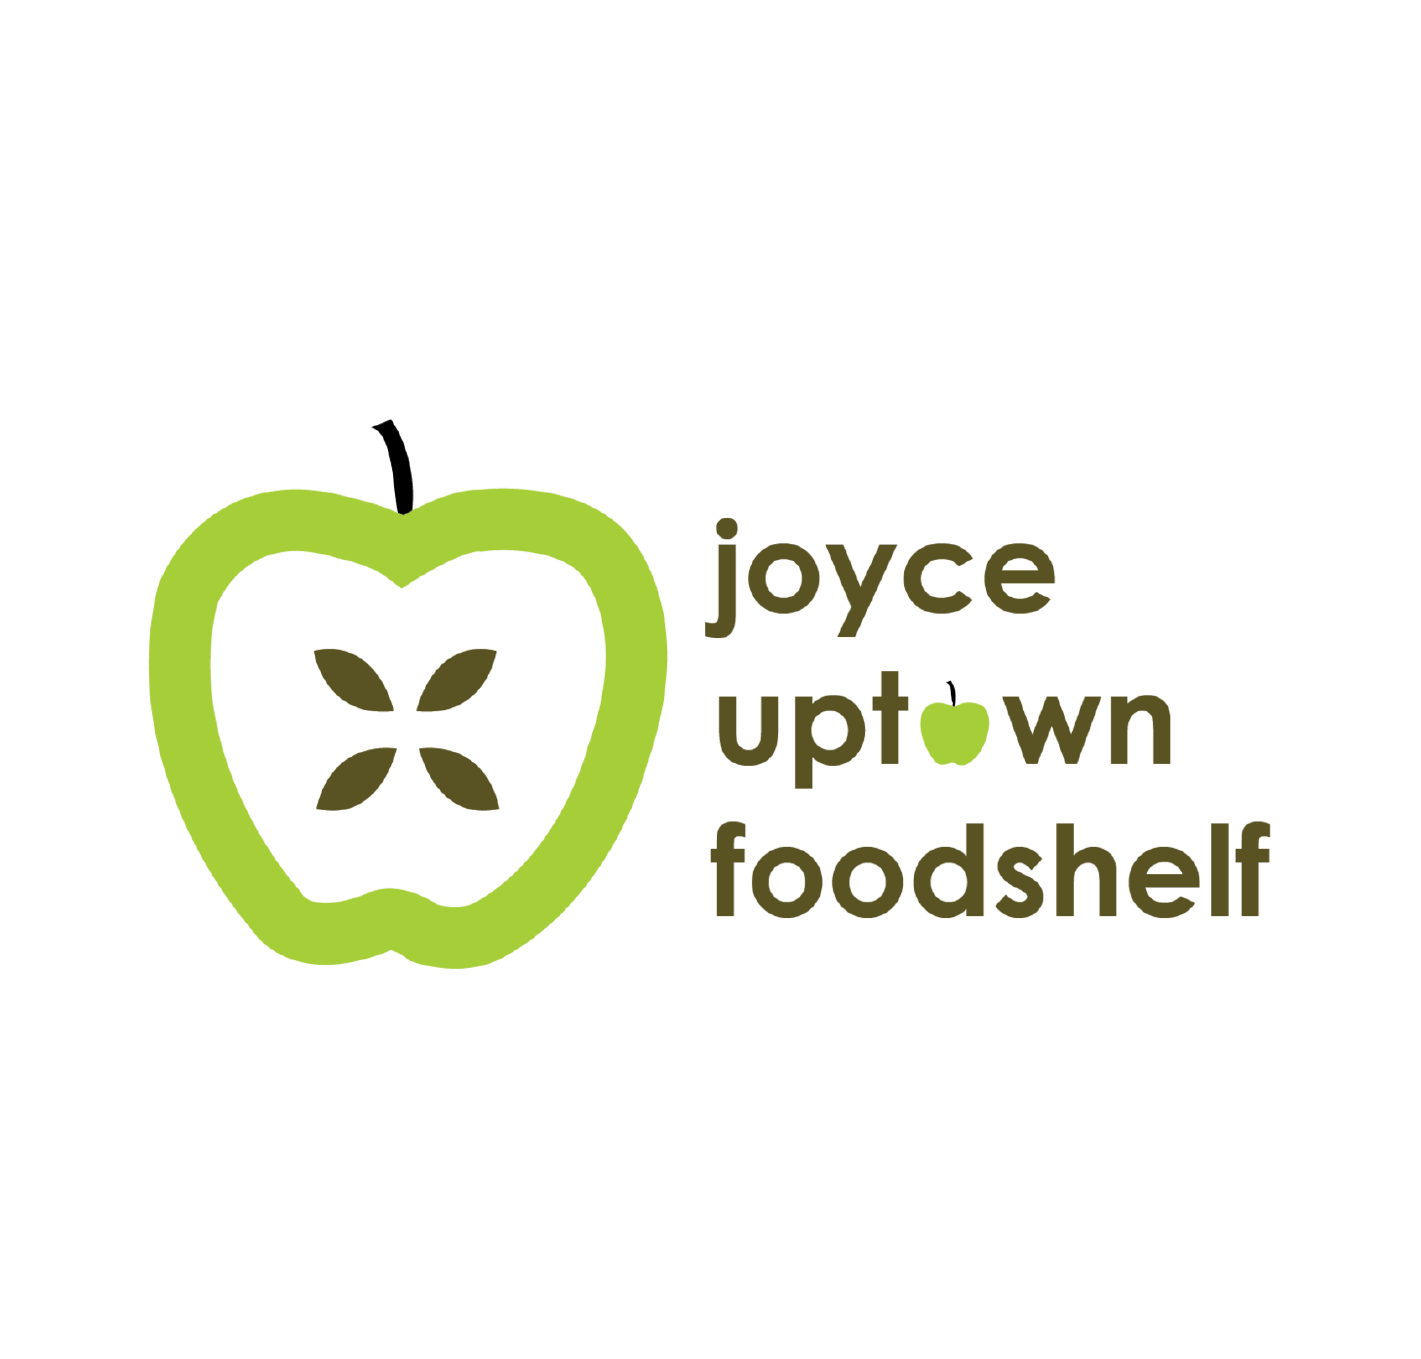 Joyce Uptown Food Shelf - The mission of Joyce Uptown Food Shelf is to provide emergency food to hungry people in Southwest Minneapolis. The food shelf gives clients a three-day supply of nutritionally balanced food once a month. It will also make referrals to other agencies for additional services.